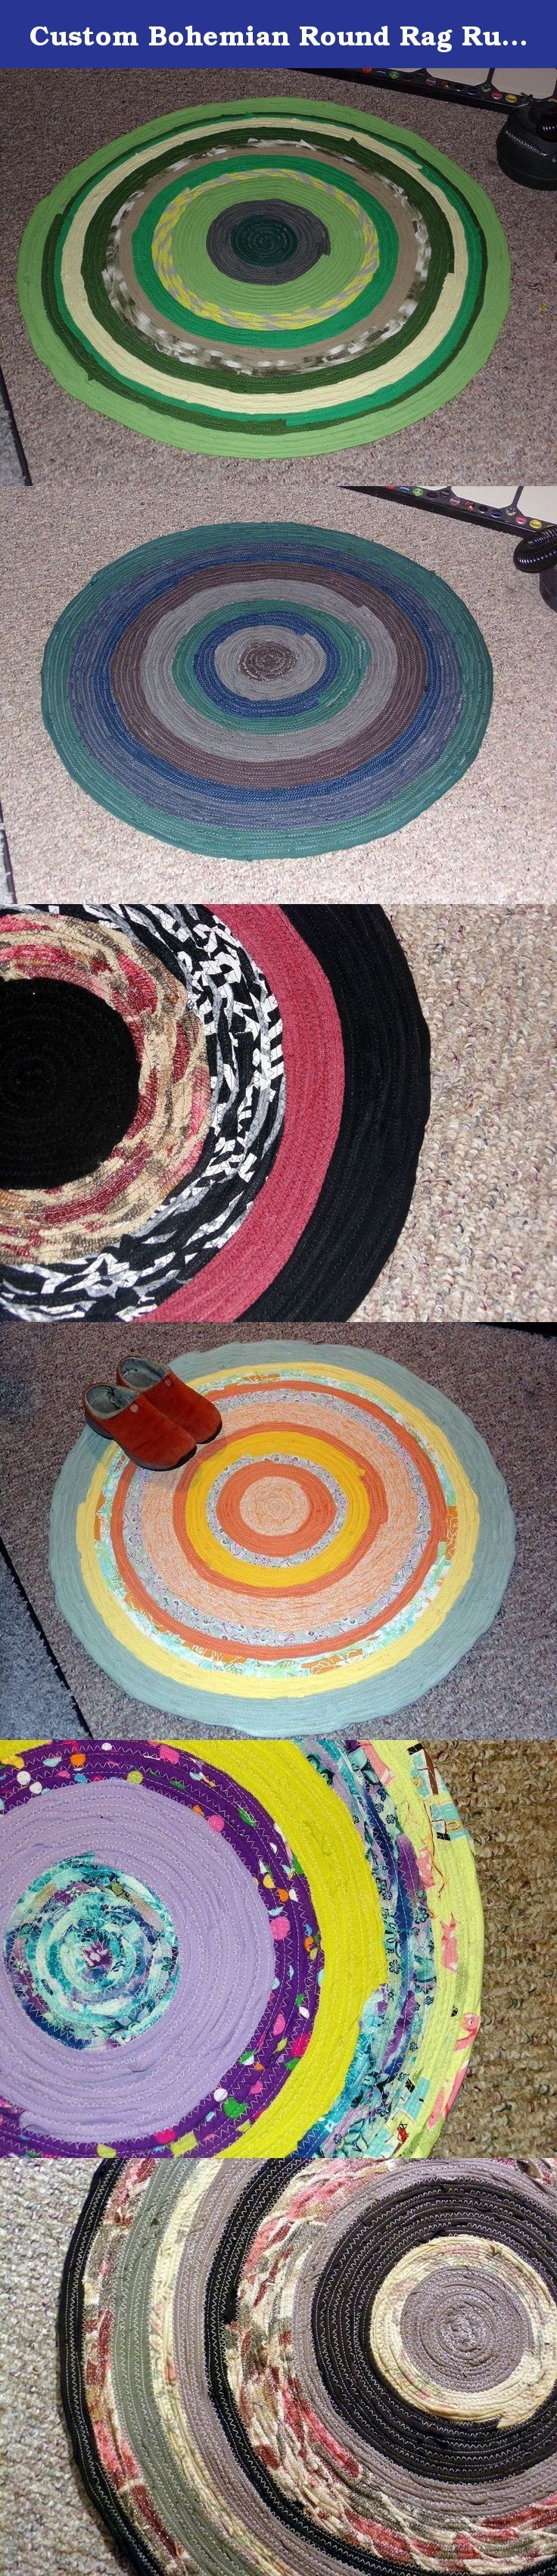 Custom Bohemian Round Rag Rug, Any Color, Circle Rug, Gypsy Round Wall Hanging, Mandala Rug Art, Round Braided Rug, Upcycled Rug Floor Covering. Round Rag Rug, Round Wall Hanging, Mandala Rug Wall Art, Round Braid Rug, Upcycled Clothing Rug Carpet Floor Covering This mandala style bohemian rug custom in any colors you choose and diameter up to 5 feet. Perfect size for large mandala wall art or a great throw rug. Round Rugd made in the rag rug/braided rug fashion. Sturdy sewn circular...